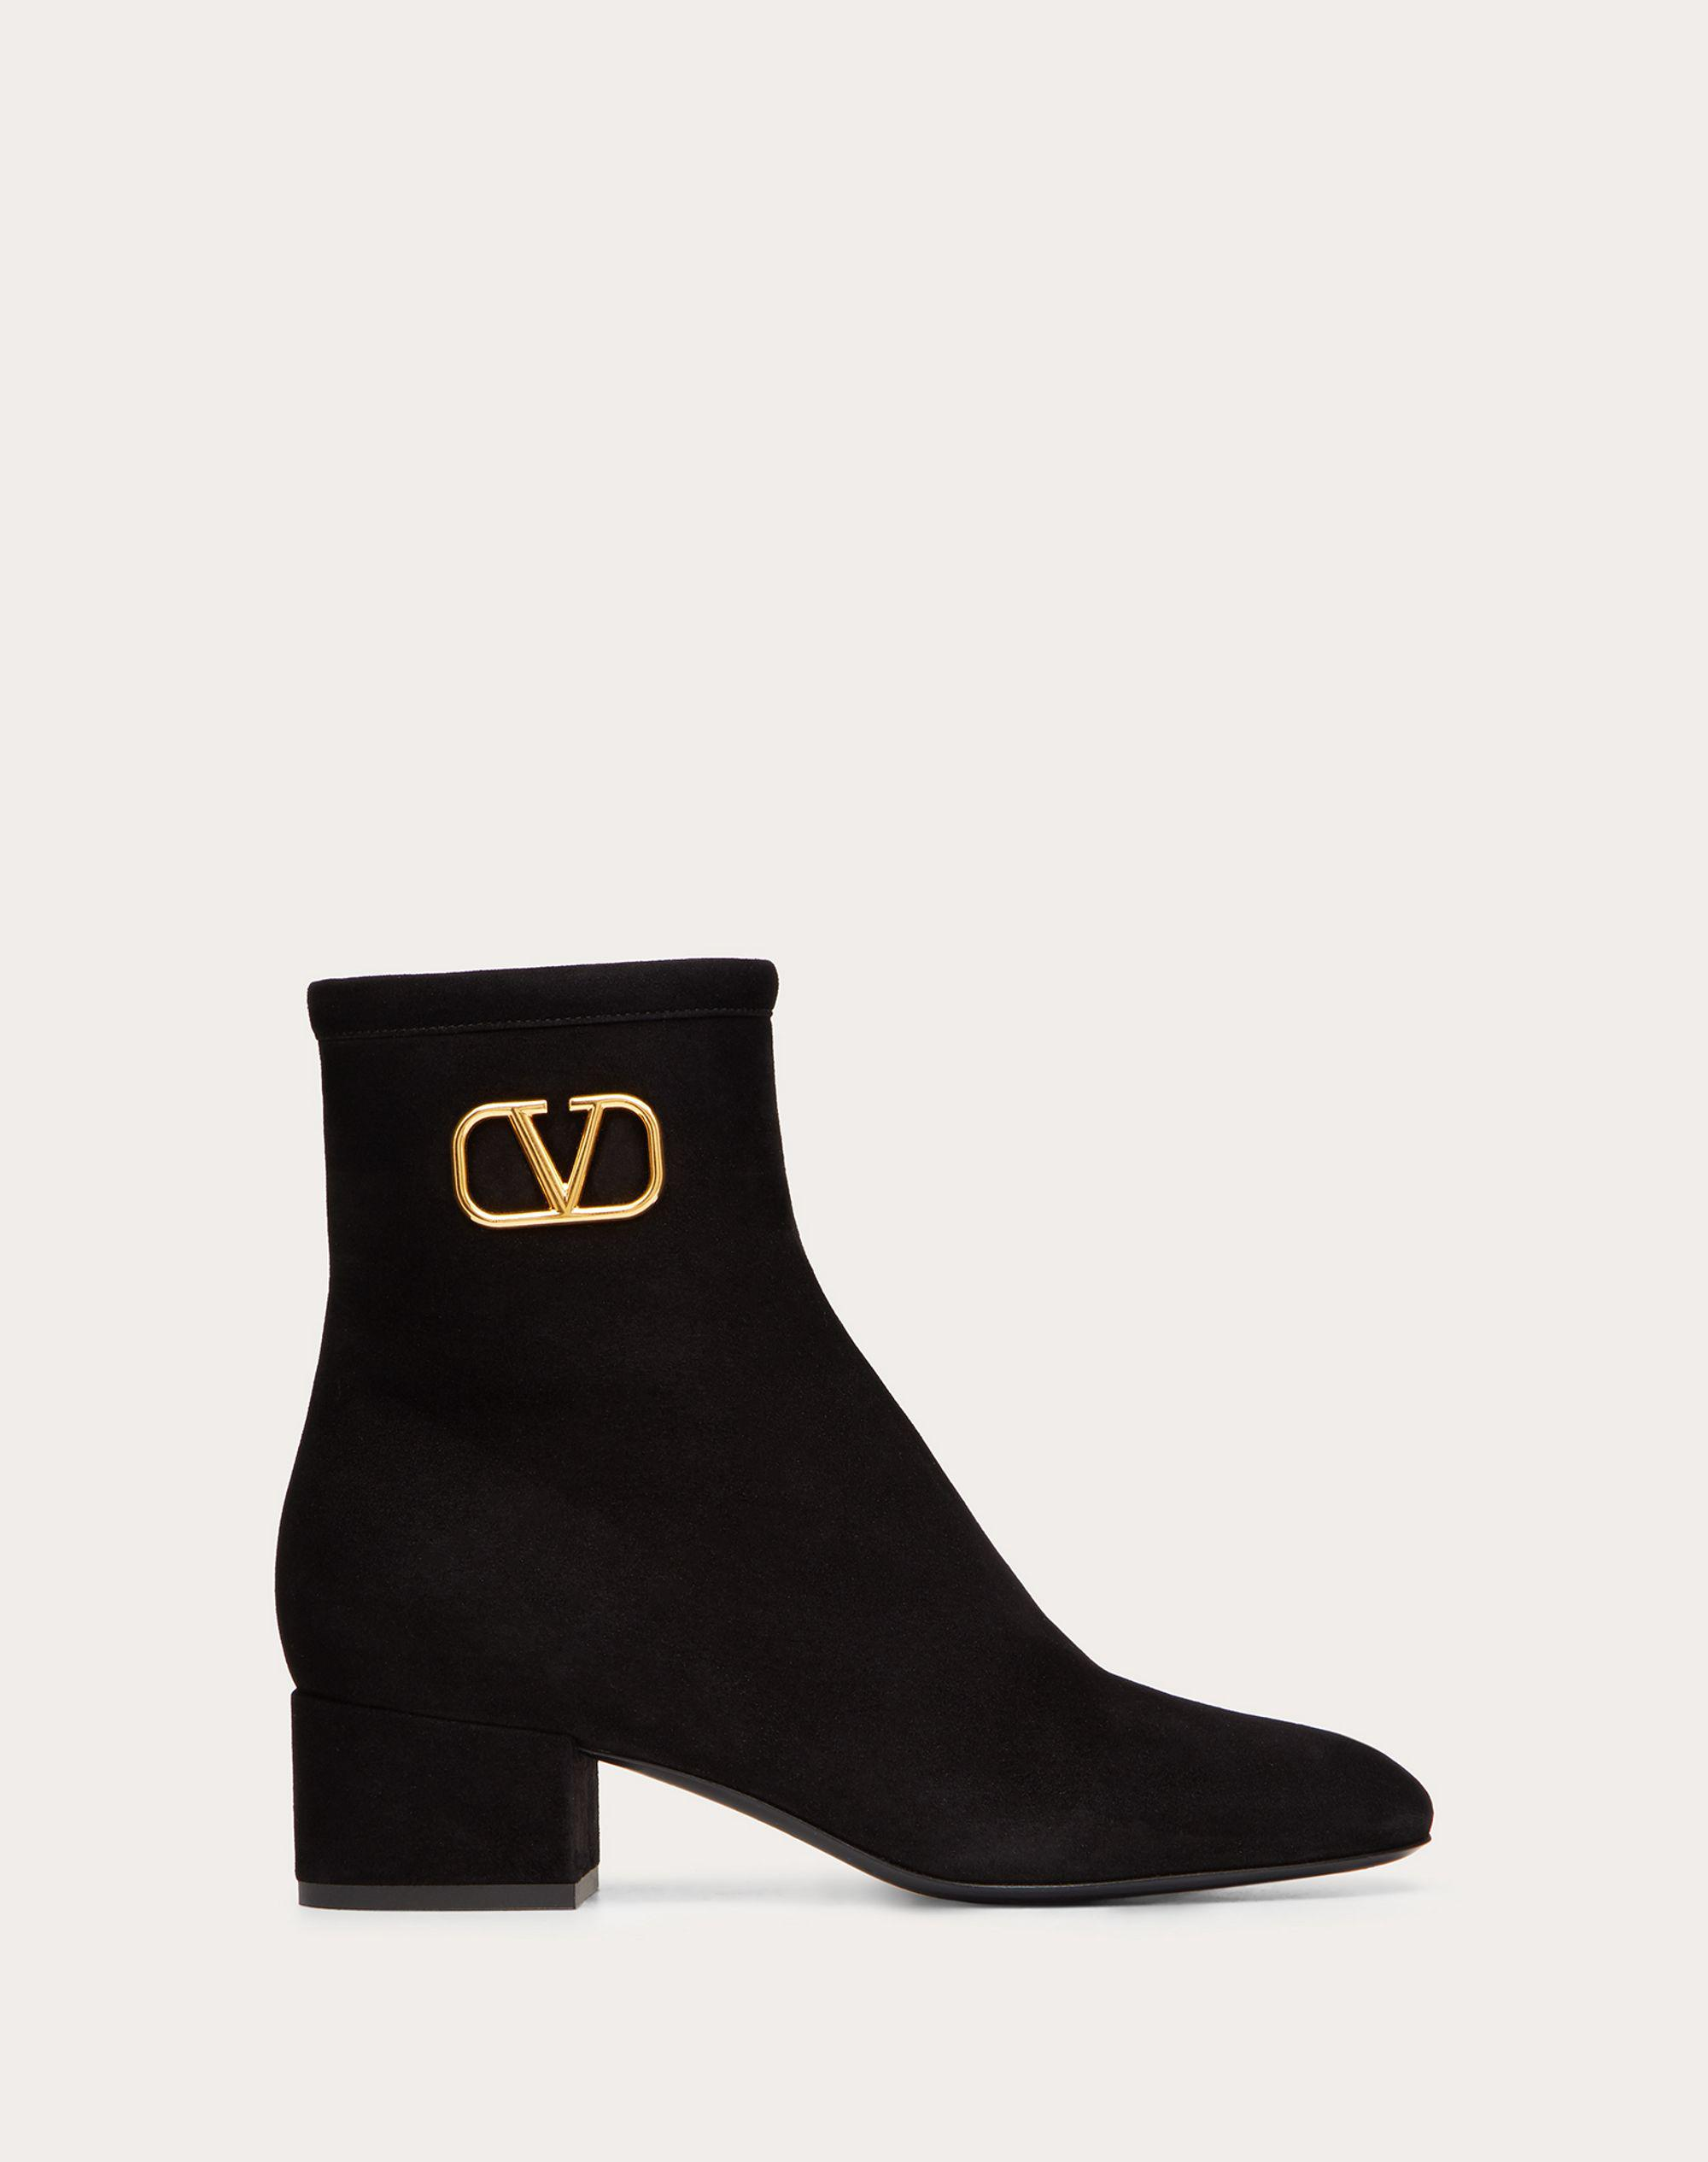 VLogo Signature Suede Ankle Boot 45mm / 1.8 in.